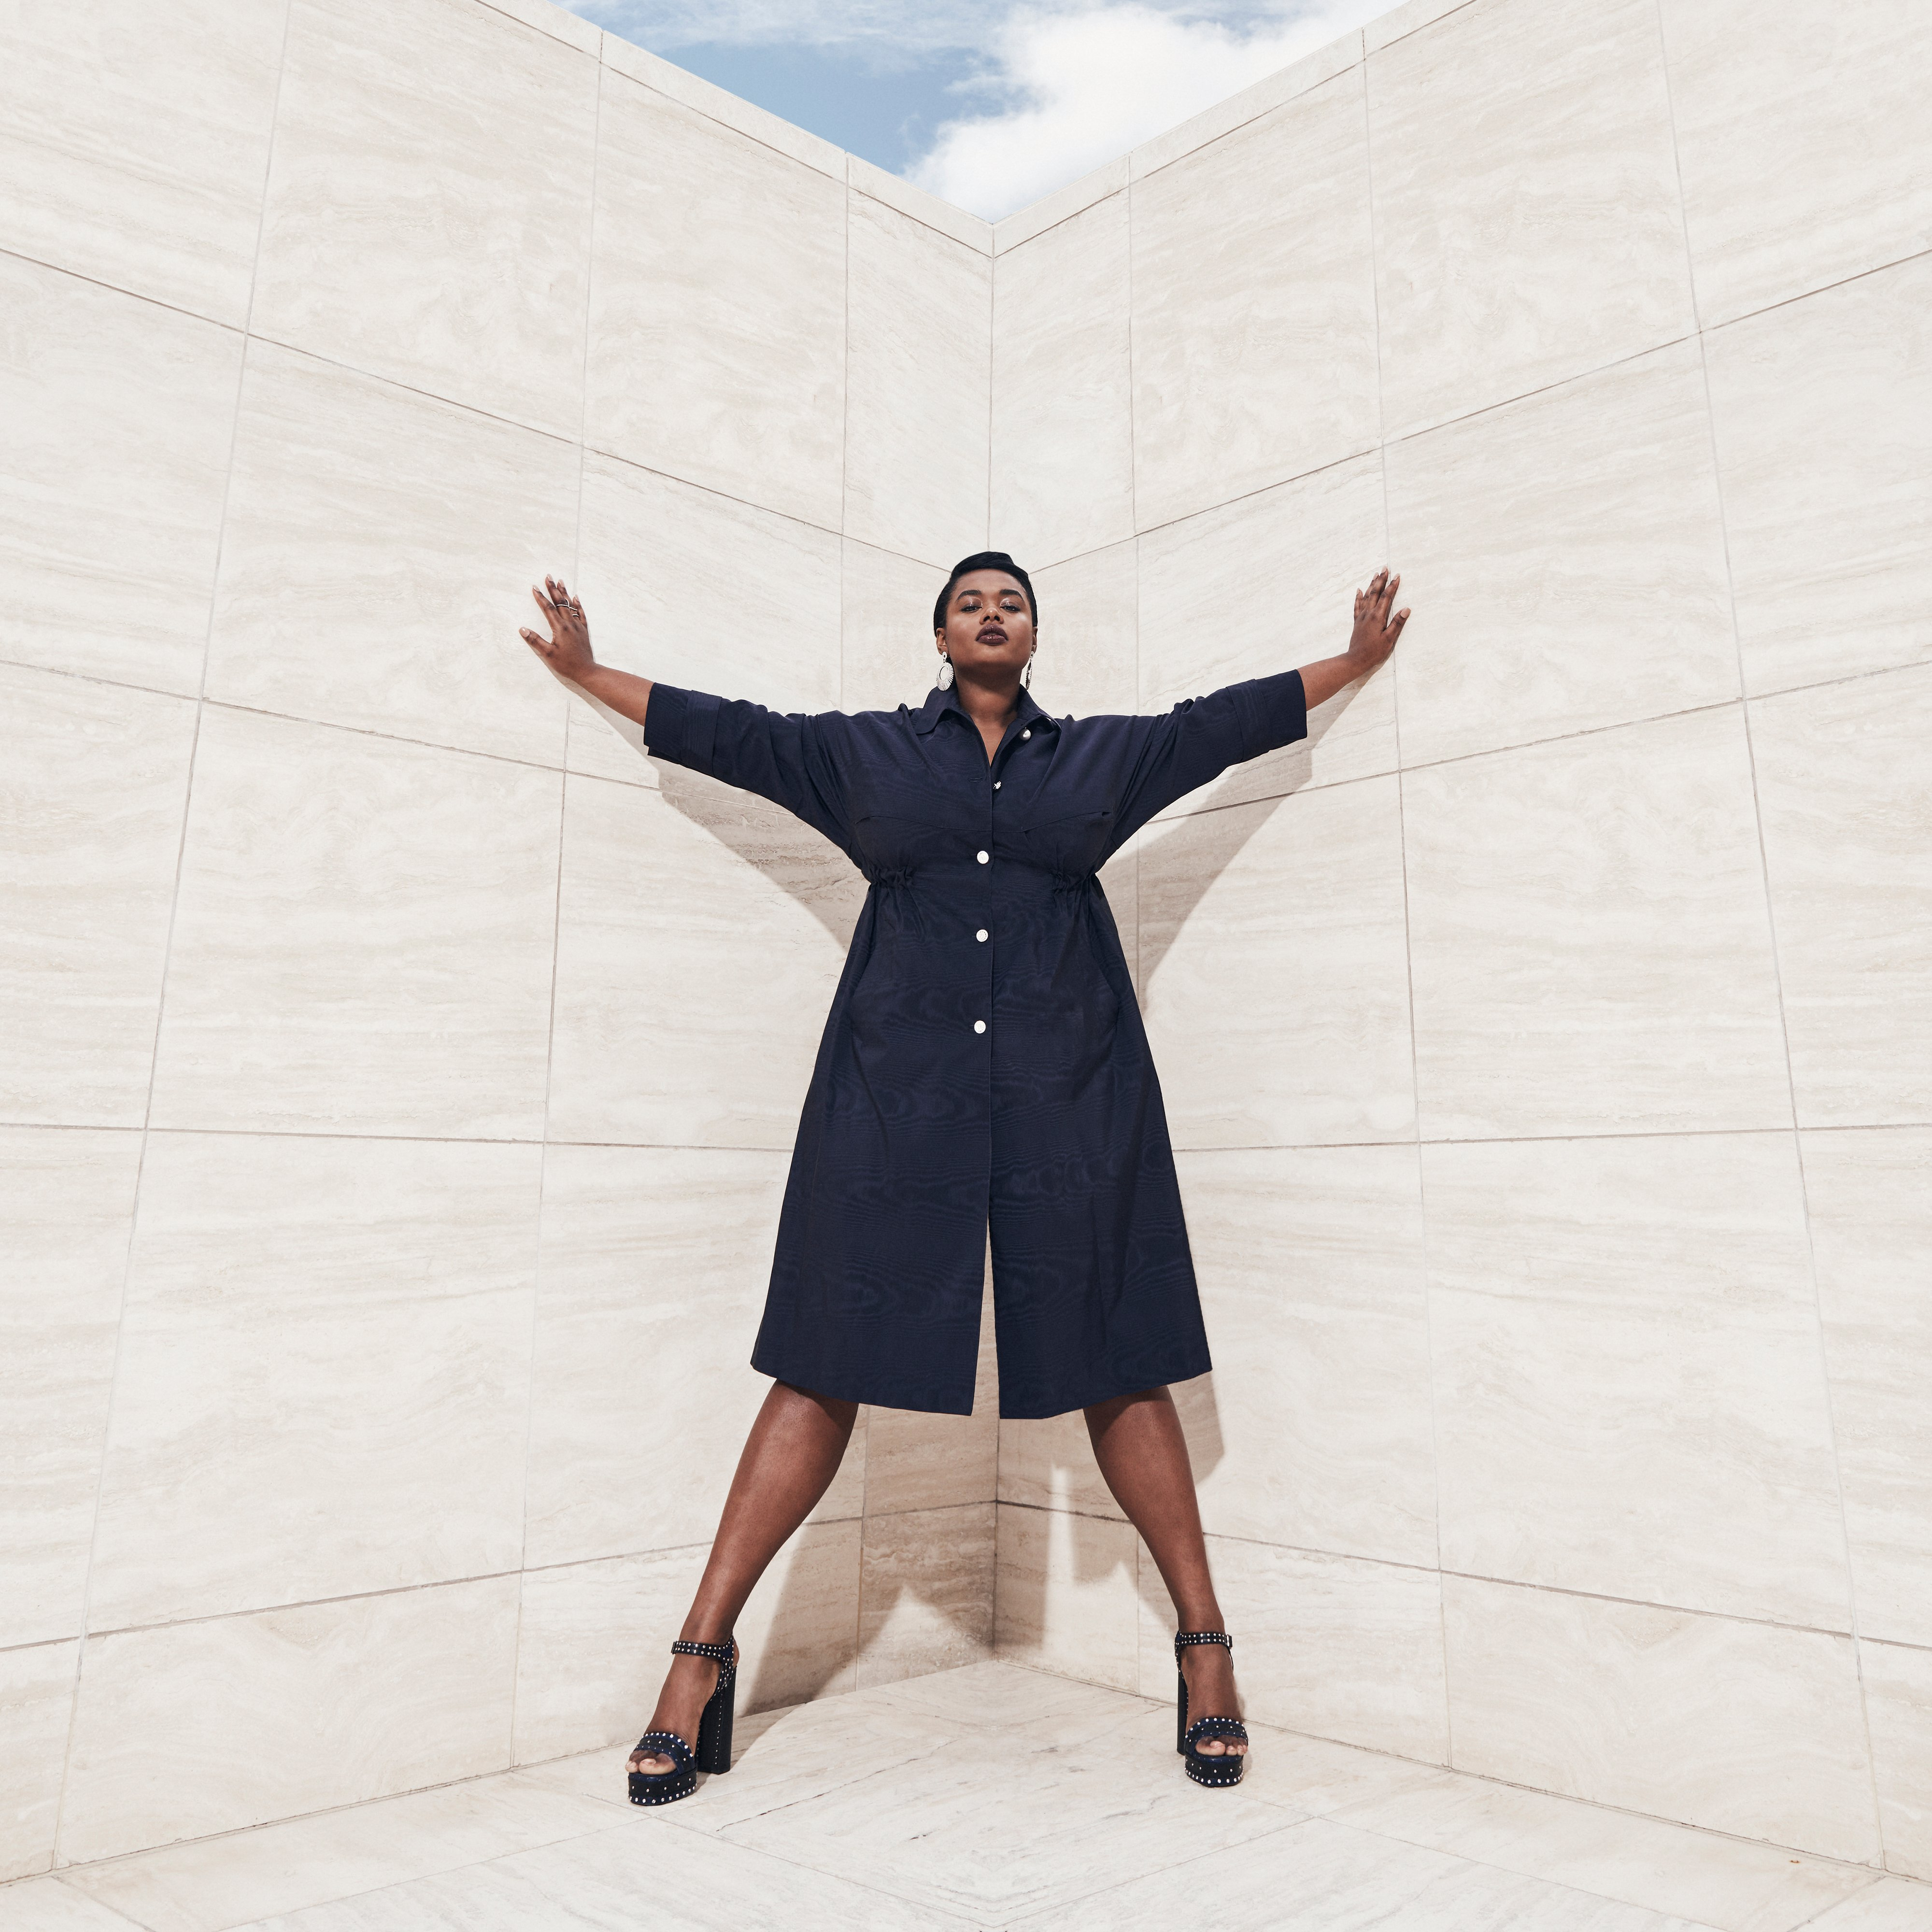 Model Precious Lee wearing designer shirt dress, Ad campaign. Art Direction by RoAndCo